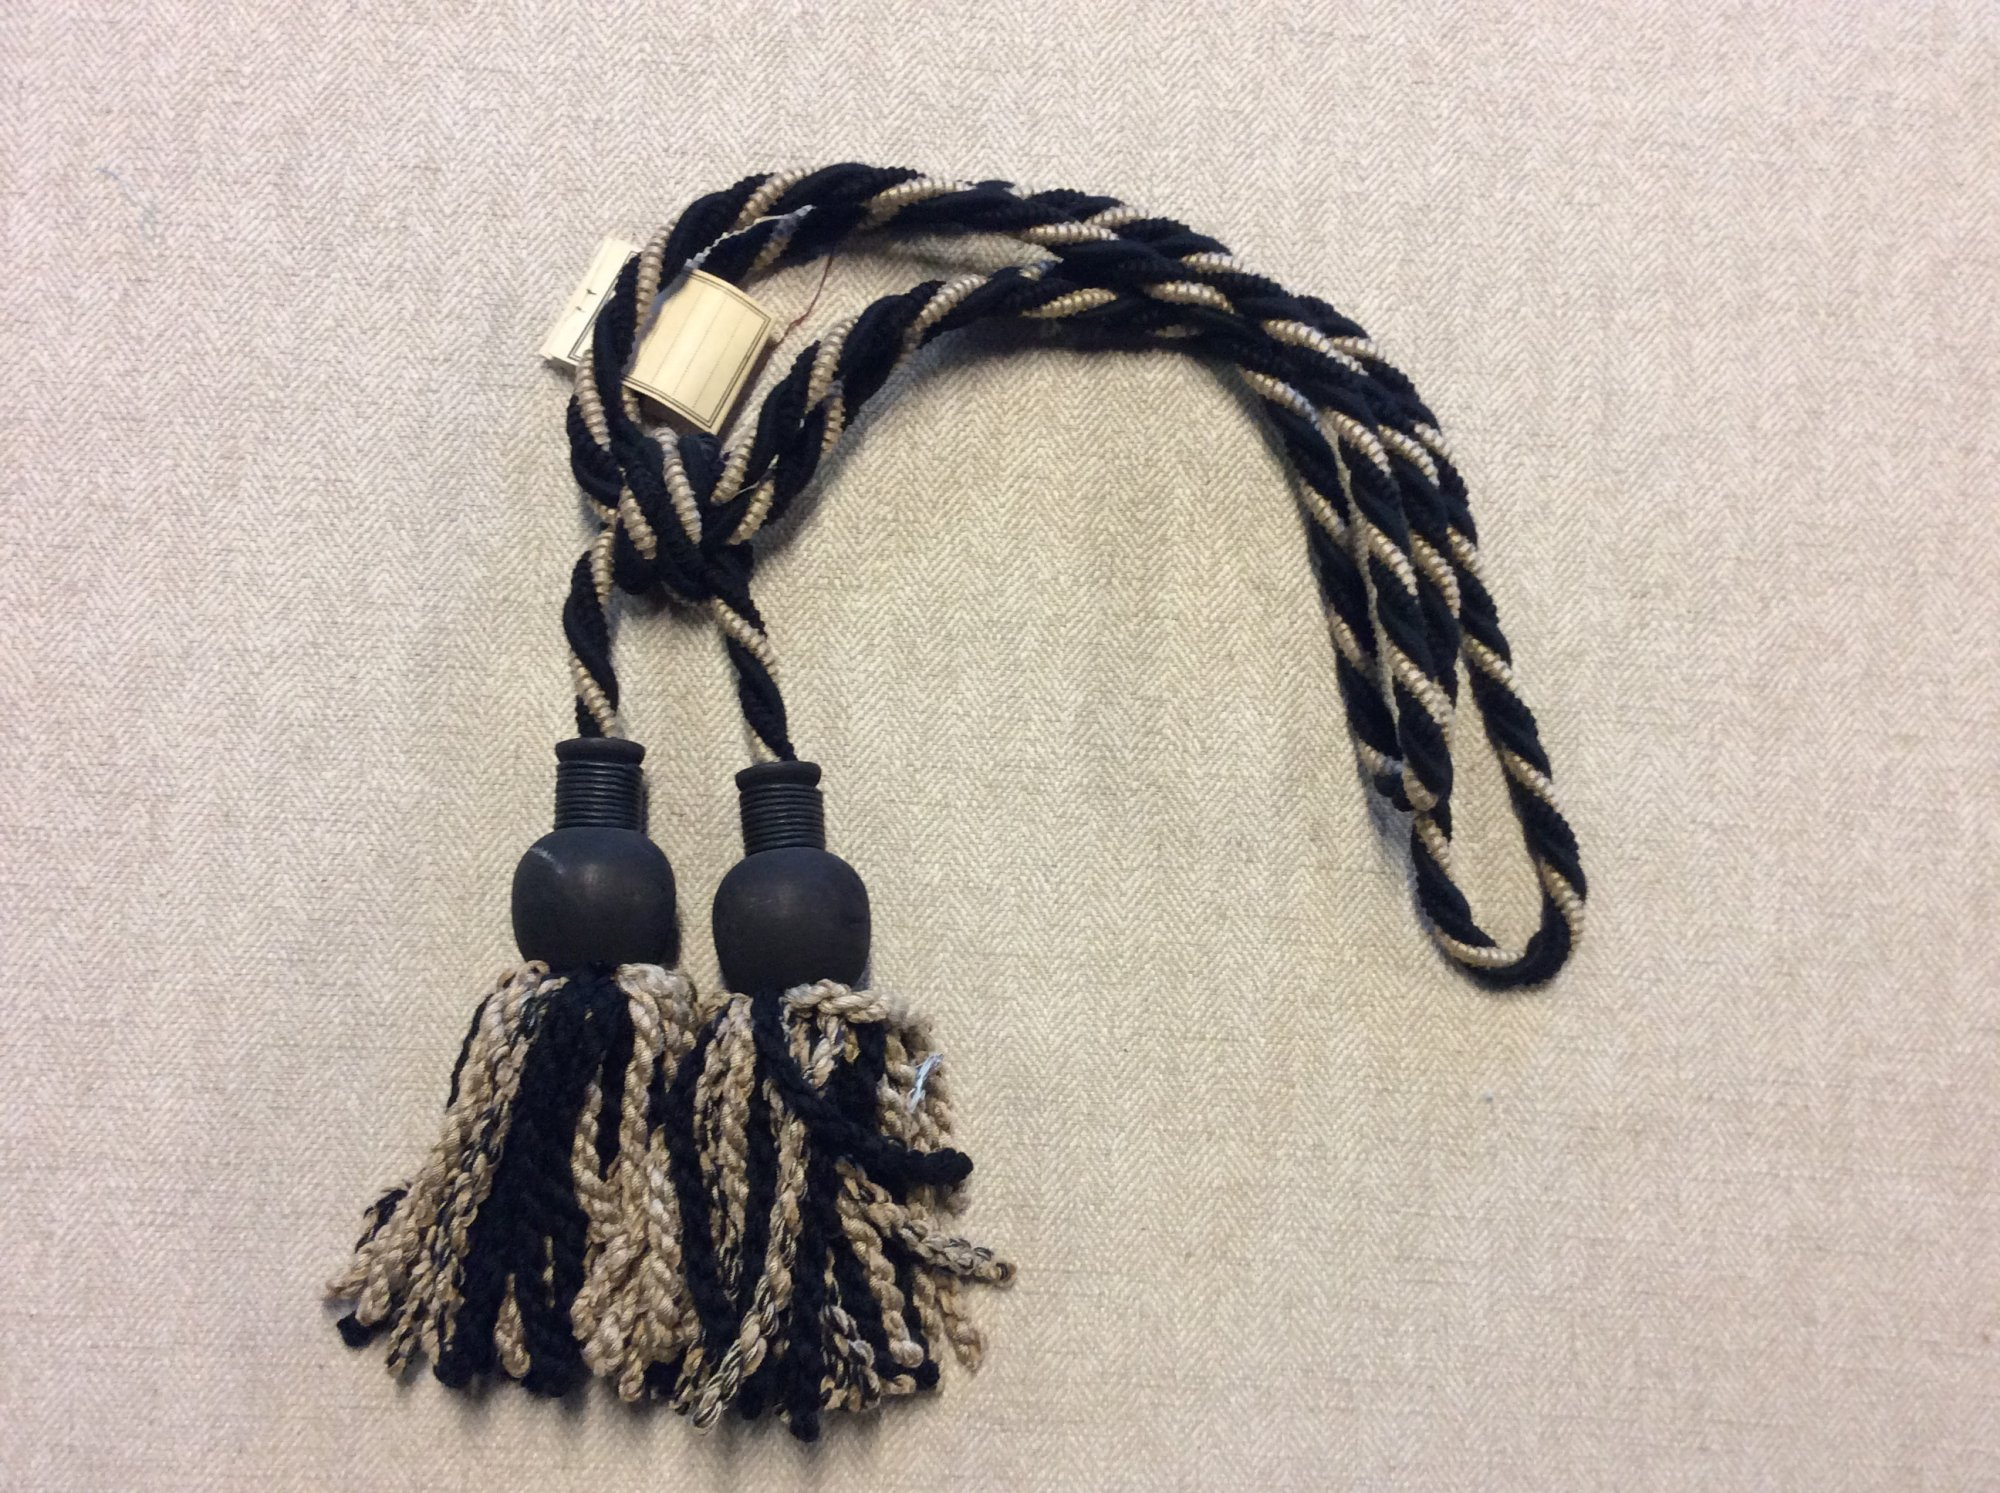 Vintage Brunschwig and Fils Double Tassel Tieback Black and Camel with Wood Accent Cotton Drapery Home Decor Tassel 39067-M90